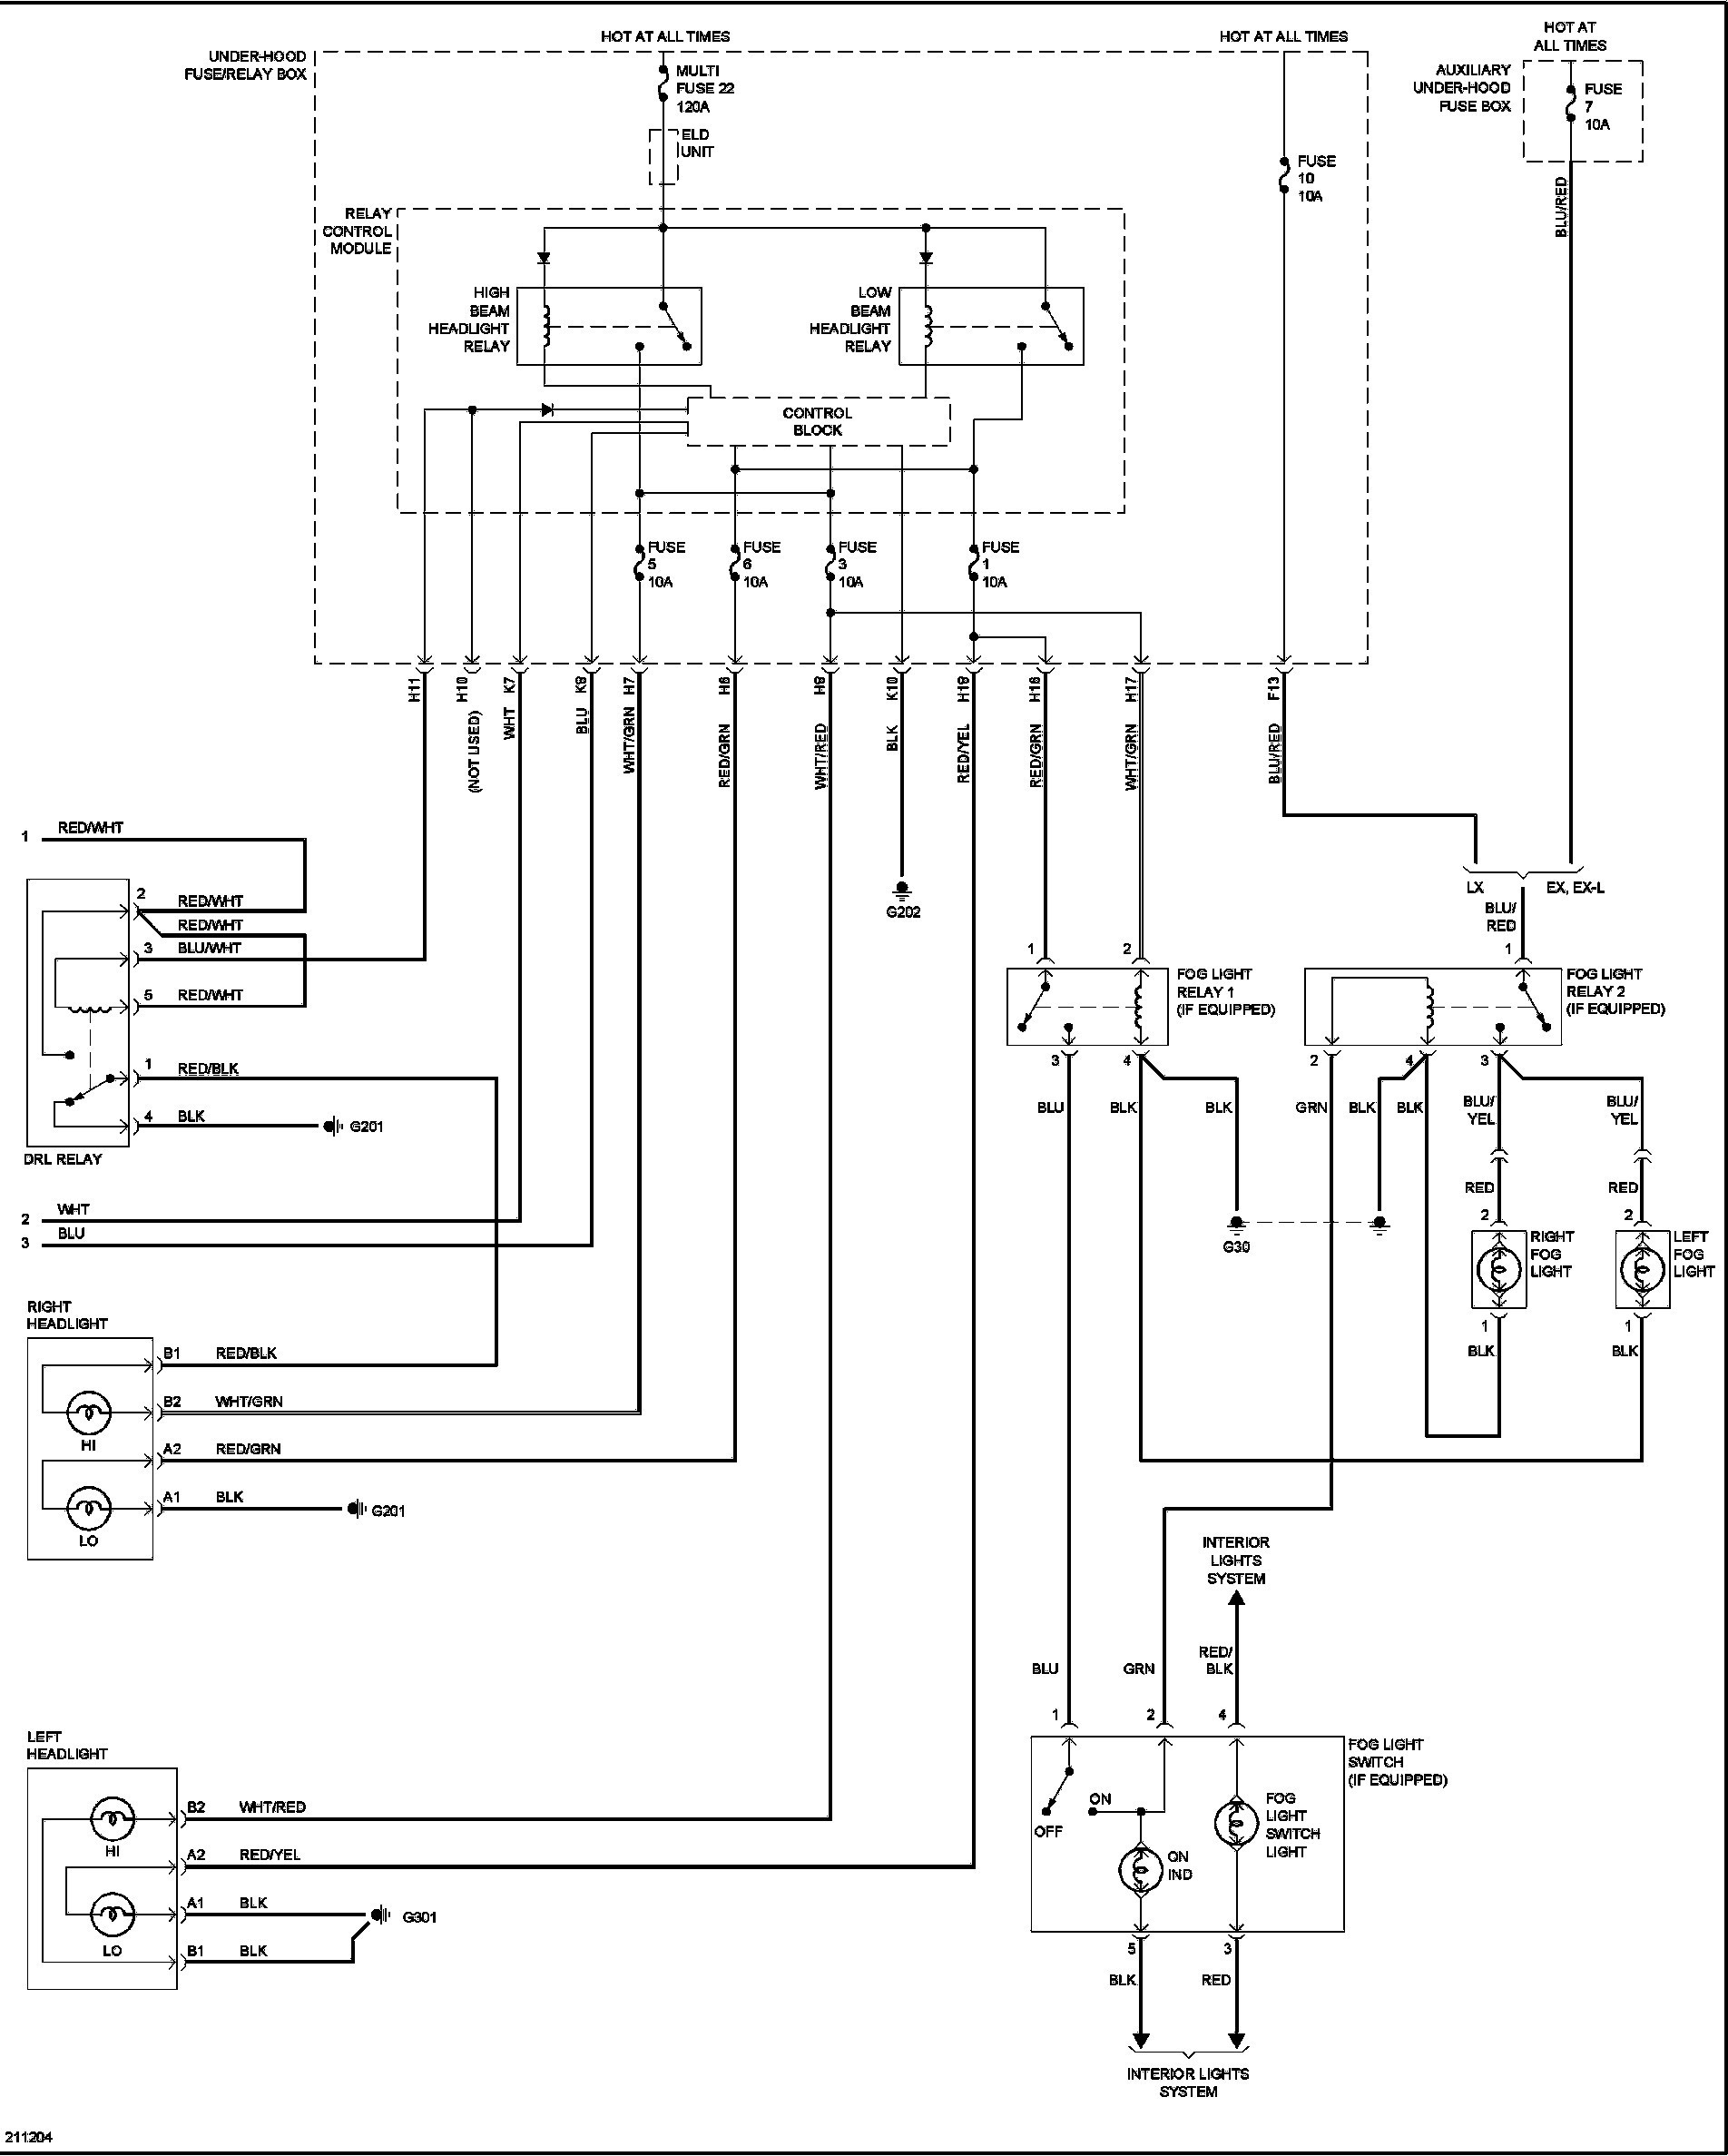 2000 Honda Odyssey Wiring Diagram Just Wiring Data 2006 Honda Odyssey Fuse  Diagram 2006 Honda Odyssey Power Door Wiring Diagram